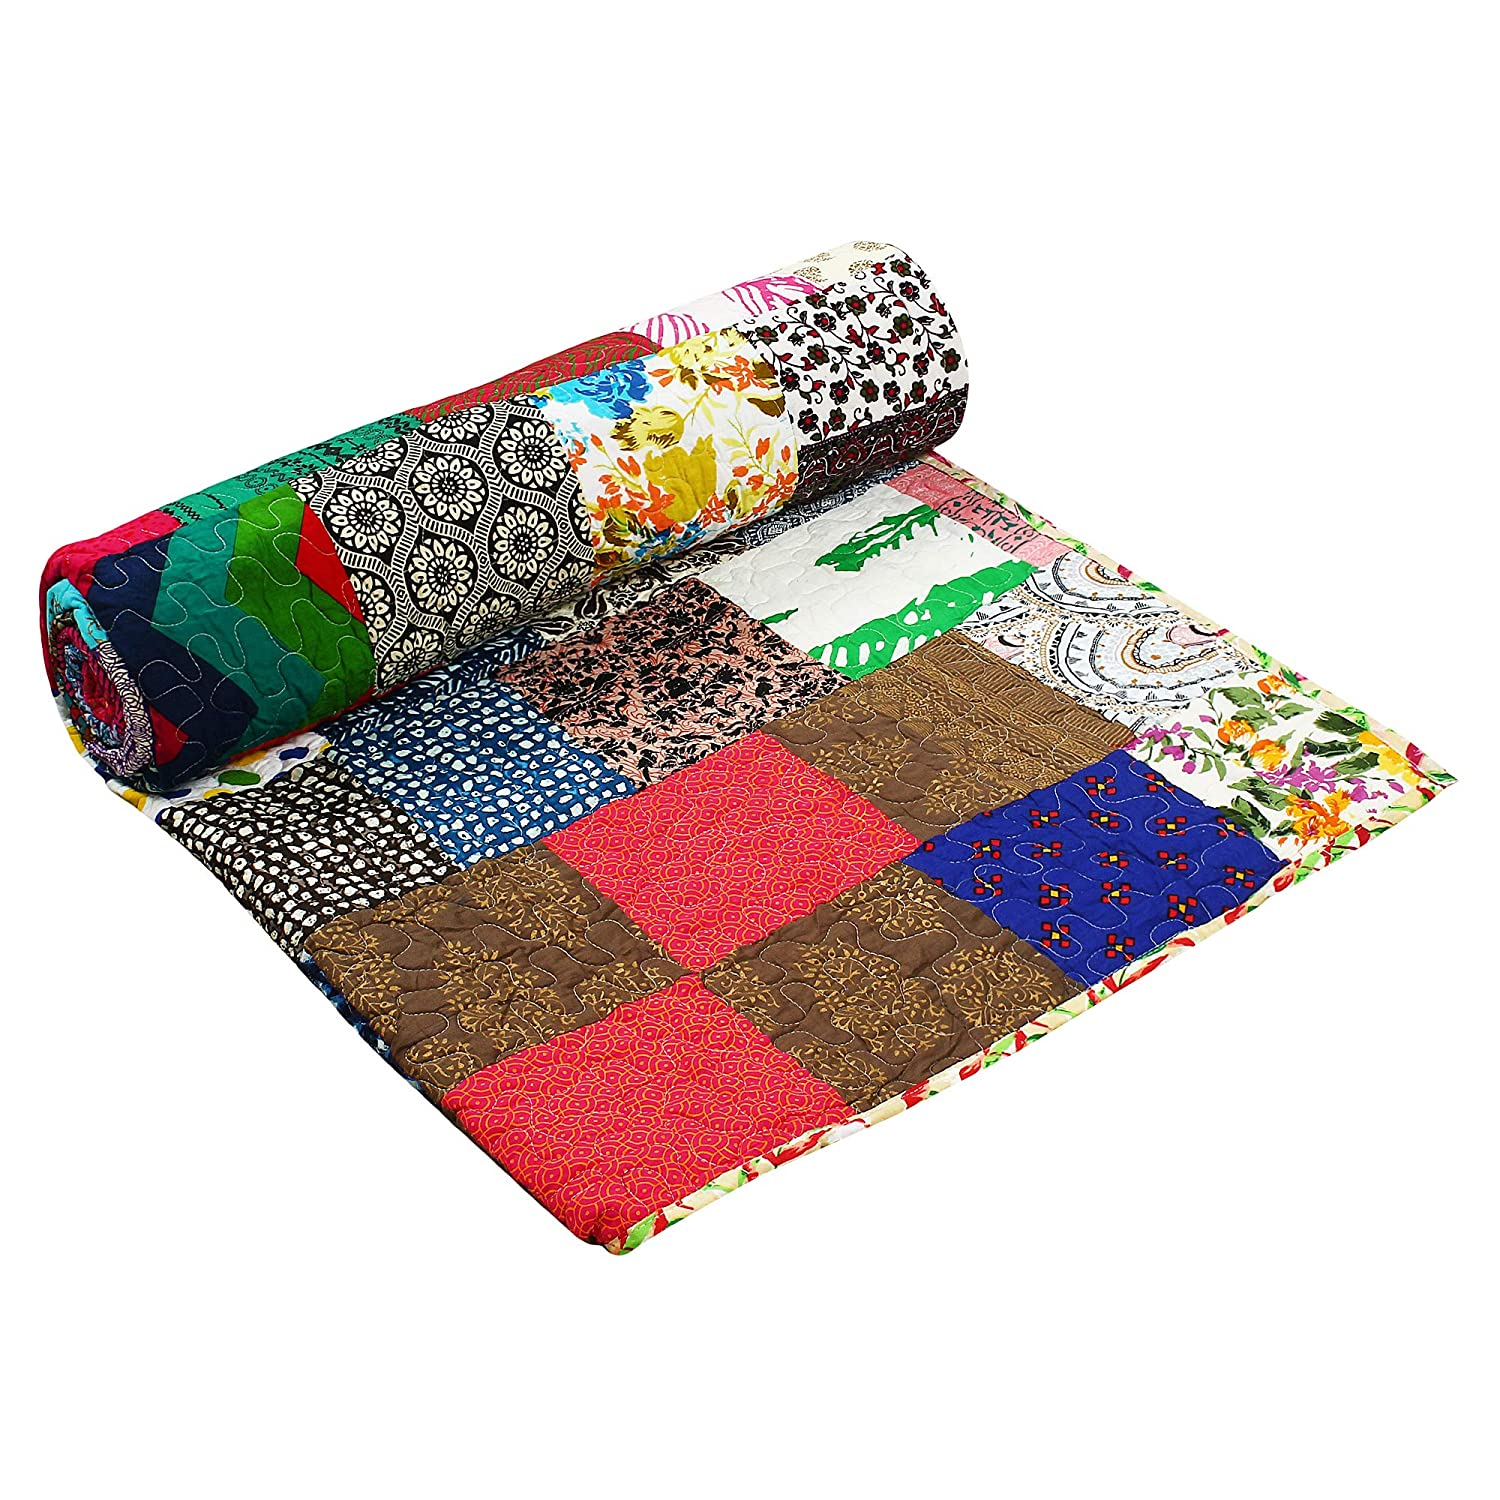 108X90 INCH KQDPAT01 Aakriti Gallery Colofrul Patch Quilt Polyfill Print 100/% Cotton Bedspread Printed Quilt Throw Indian Handmade bedsheets